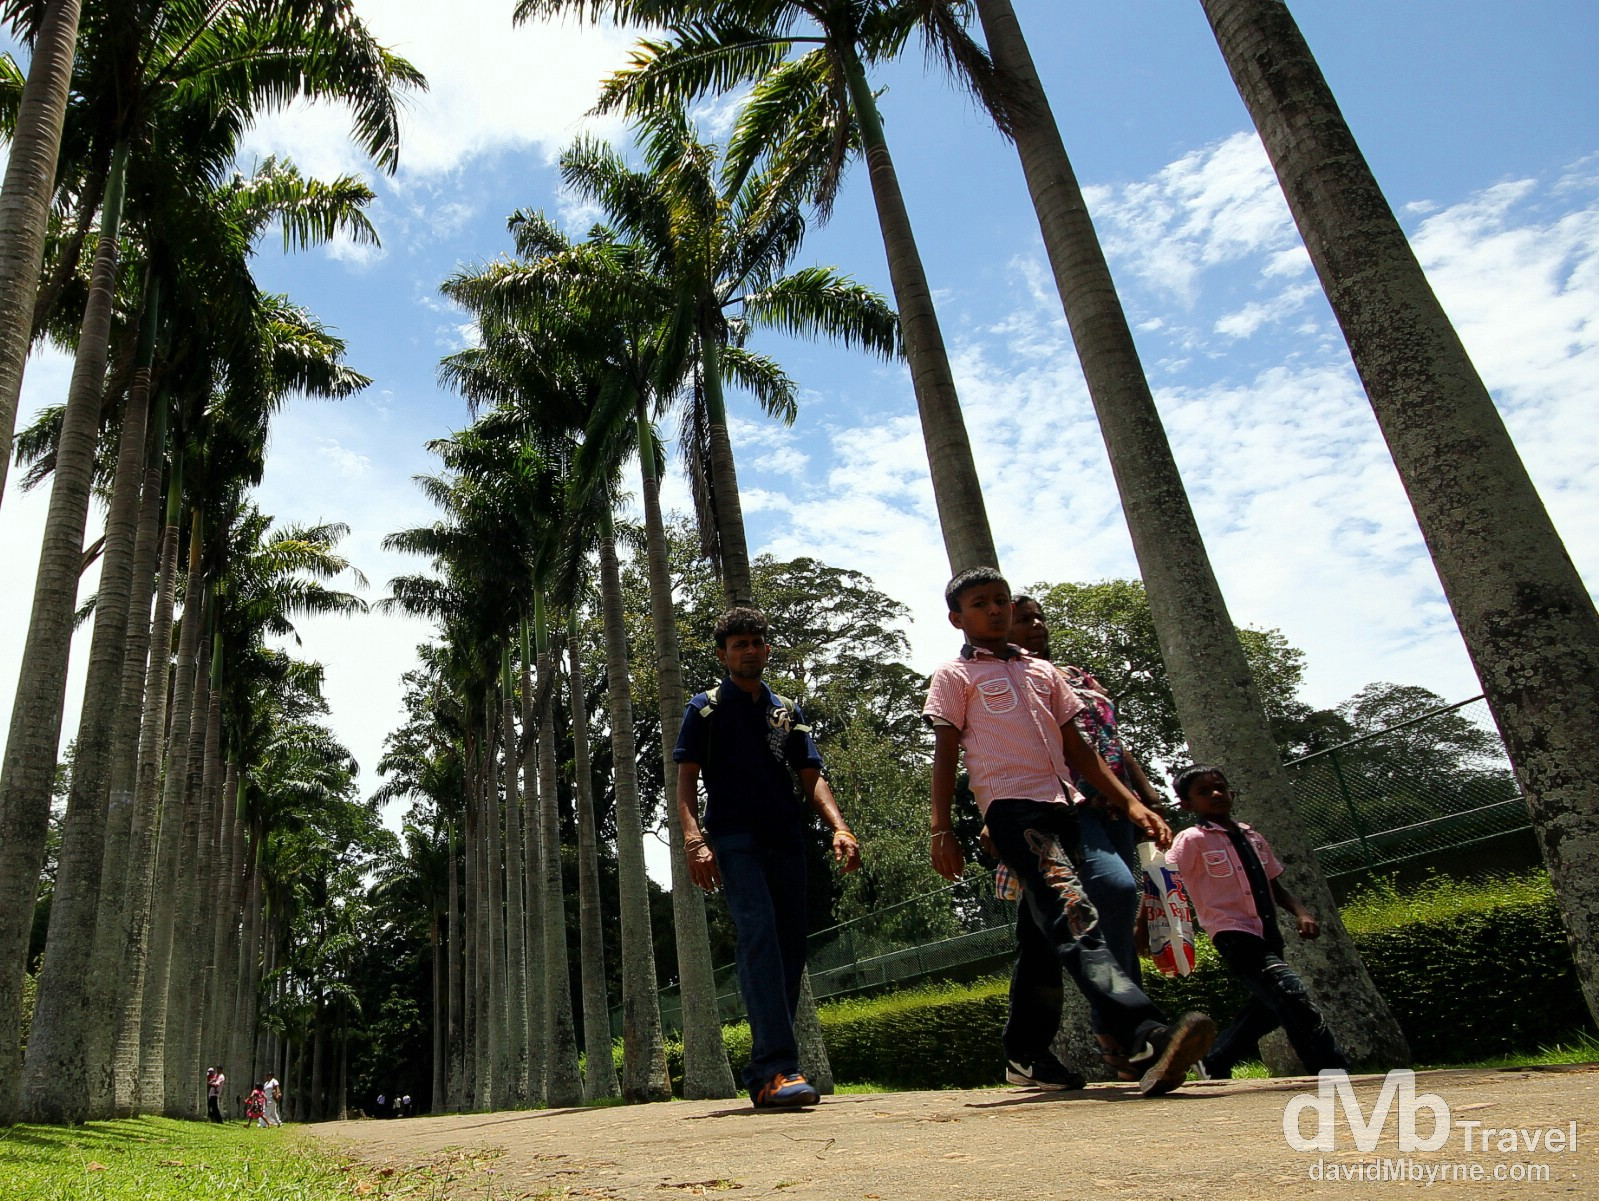 Walking Palm Avenue in Peradeniya Botanic Gardens on the outskirts of Kandy, Sri Lanka. September 9th 2102.